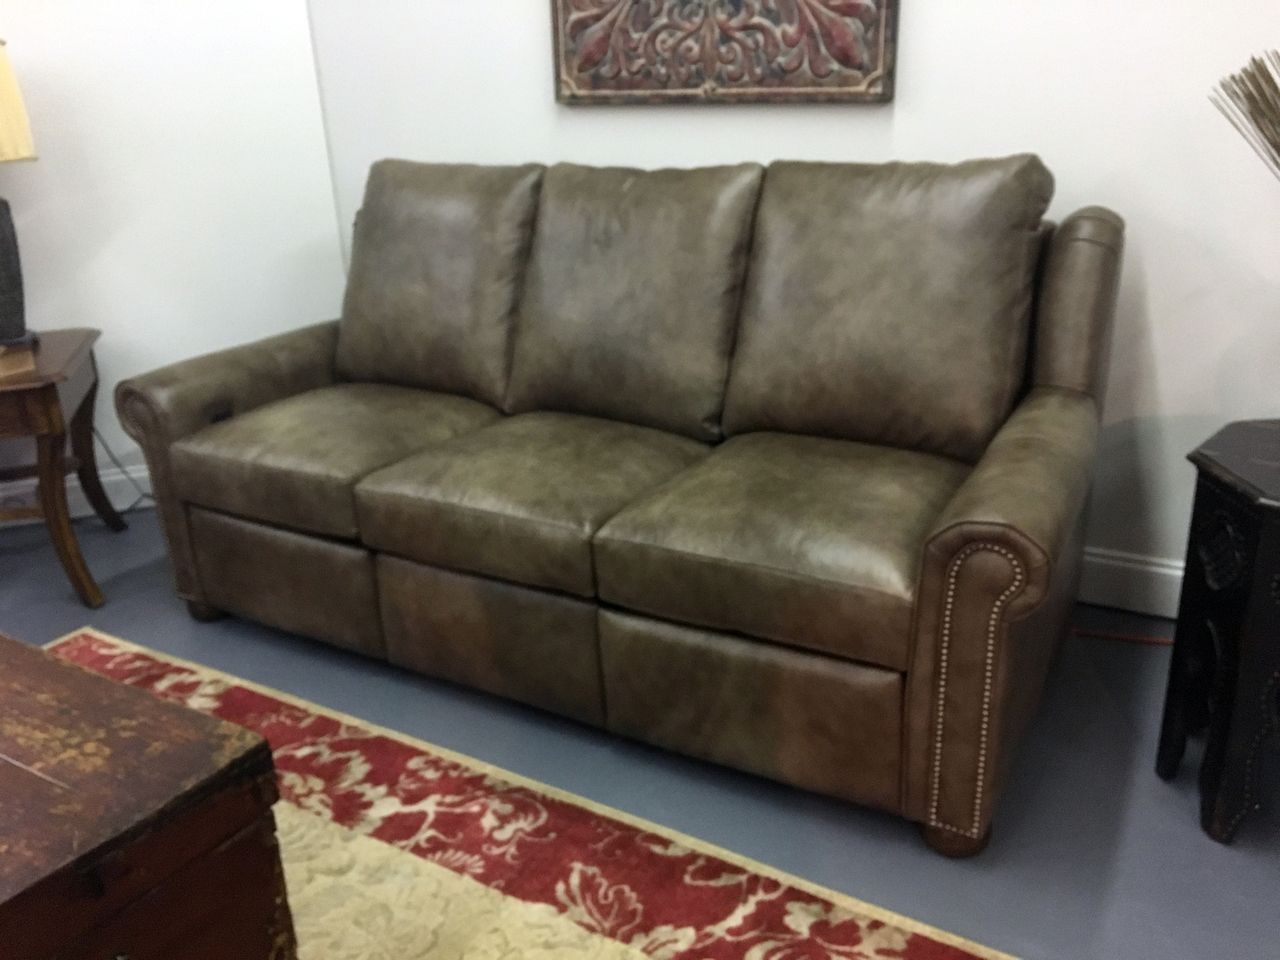 Frazier Recliner Sofa With Nails American Heritage Leather